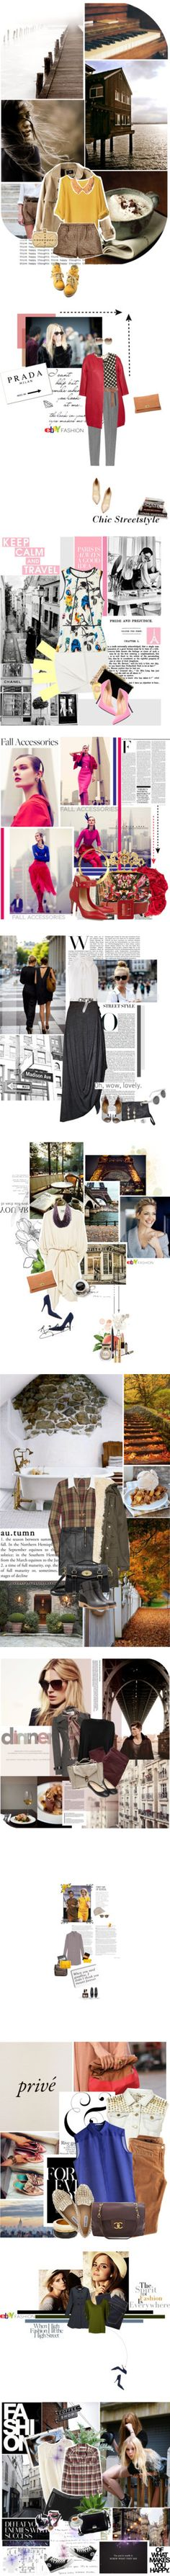 """""""Top Sets for Aug 27th, 2012"""" by polyvore ❤ liked on Polyvore"""